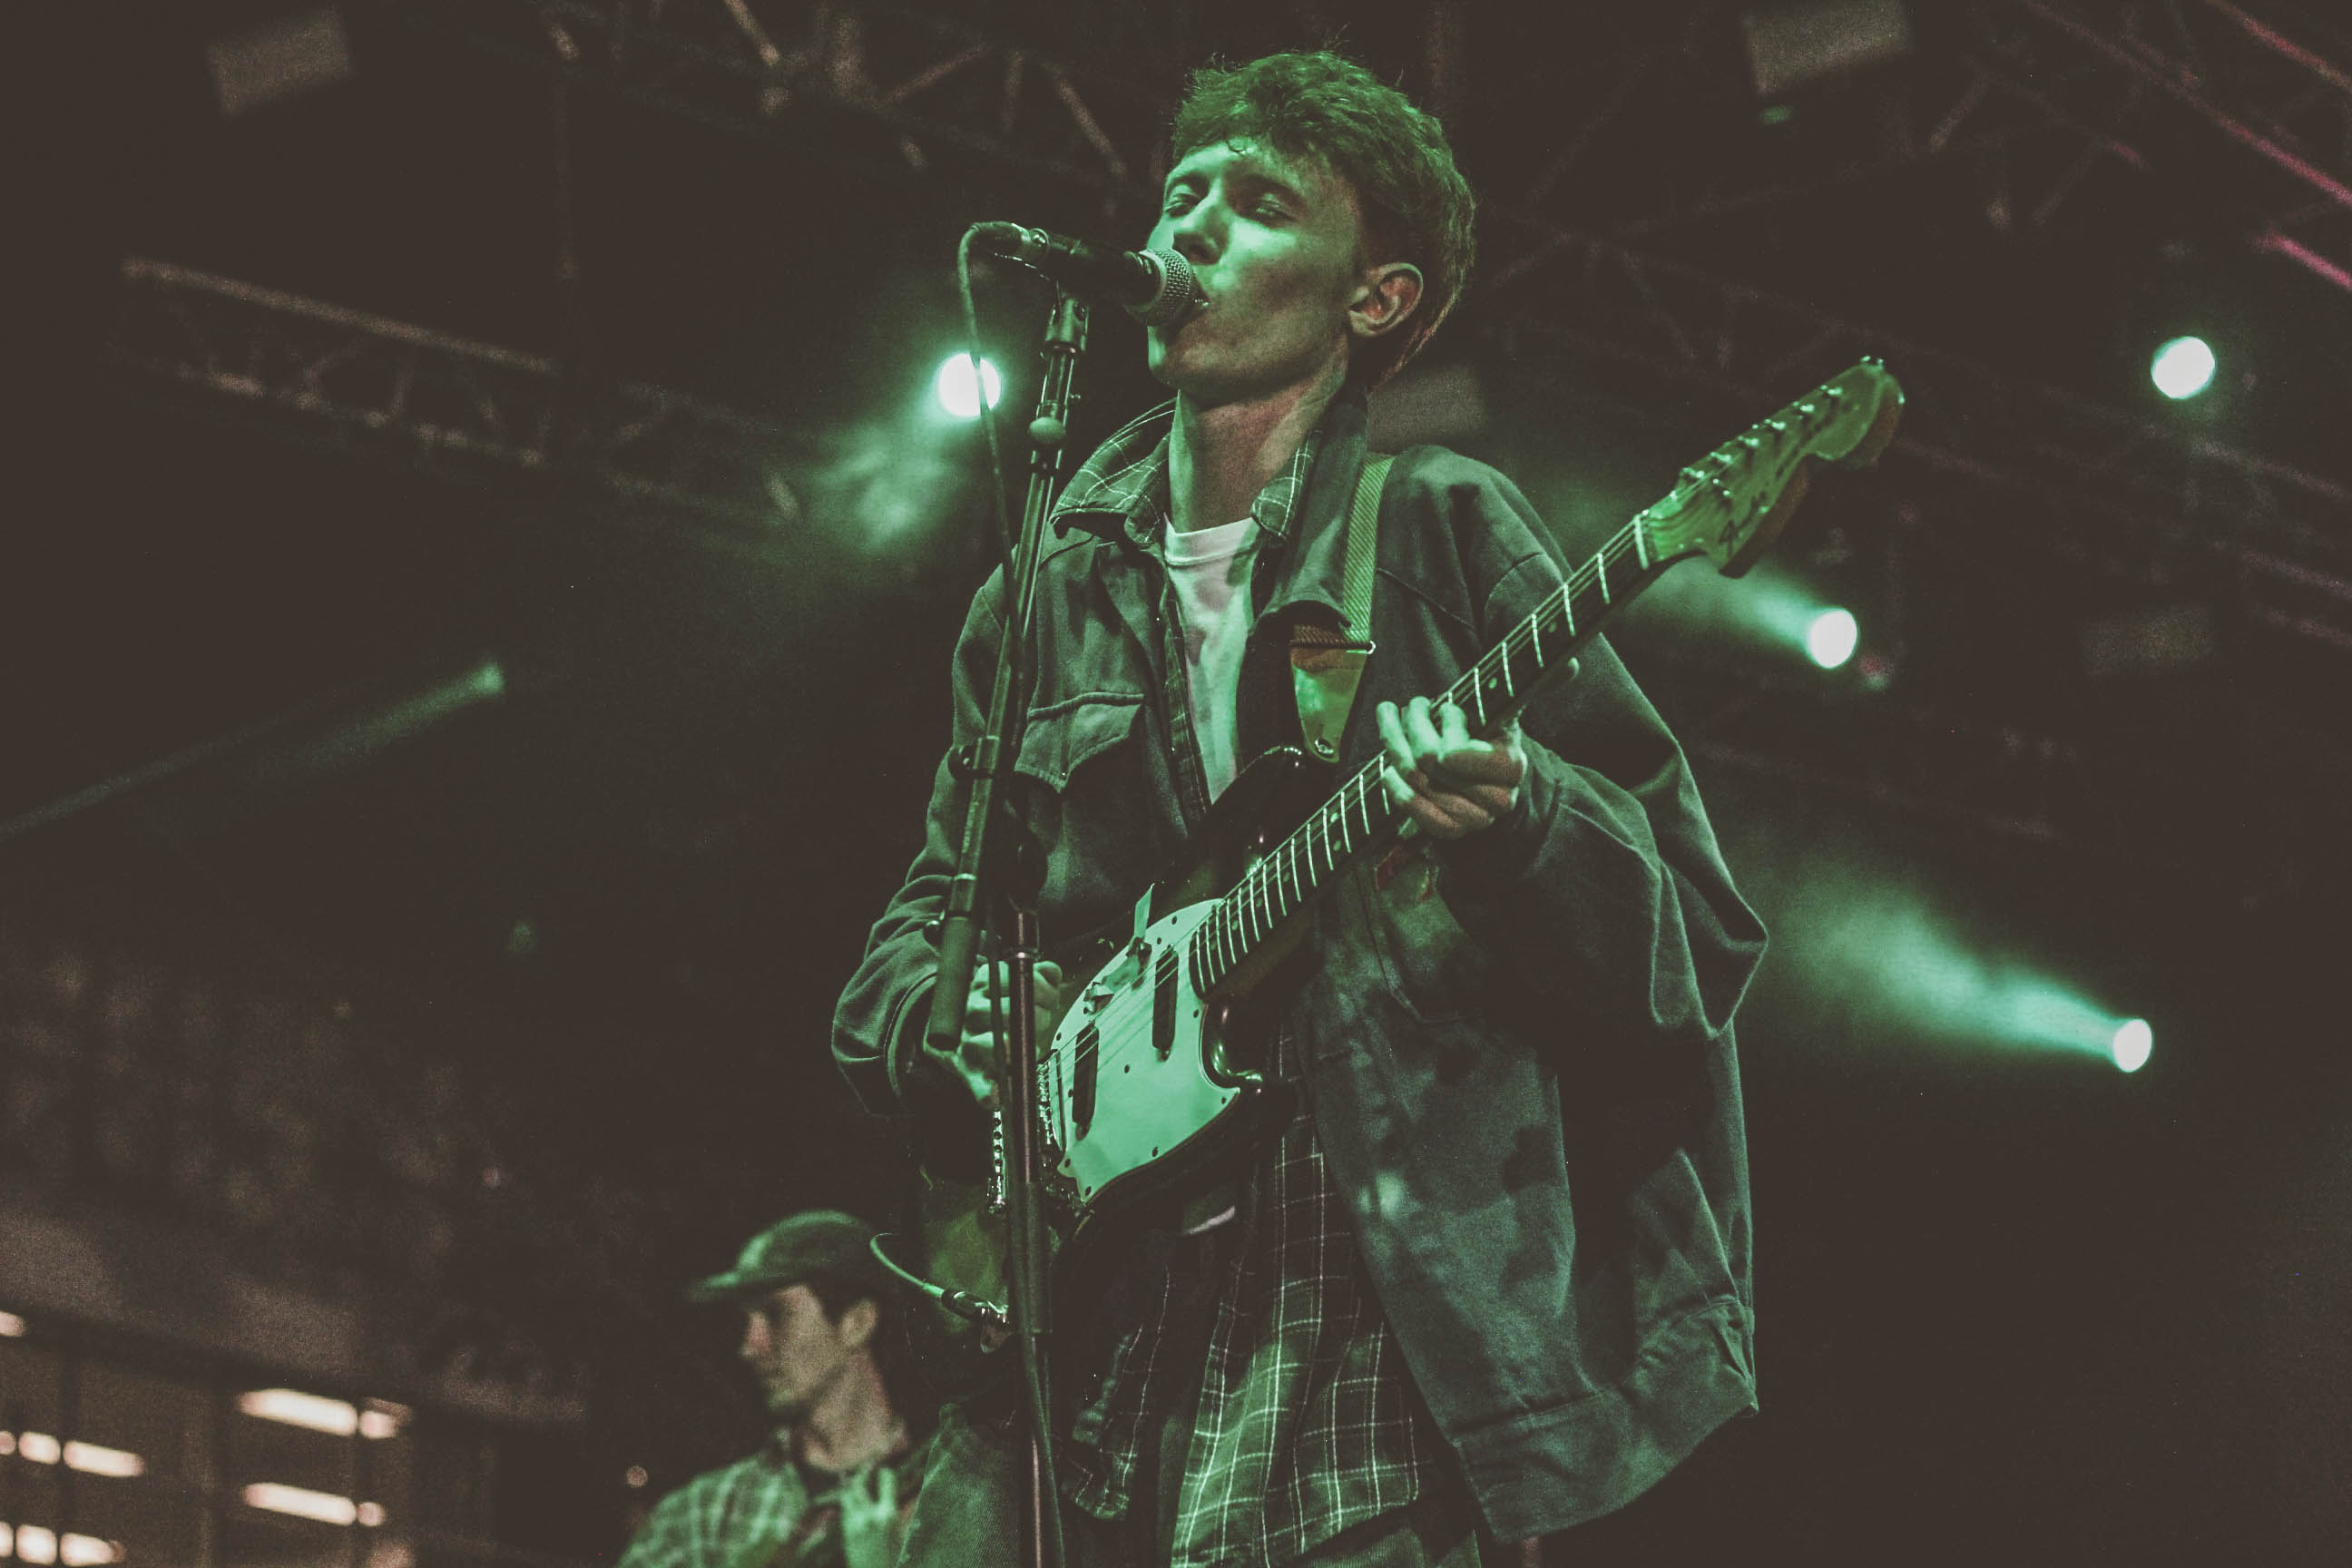 King Krule at Beach Goth 10.22.16